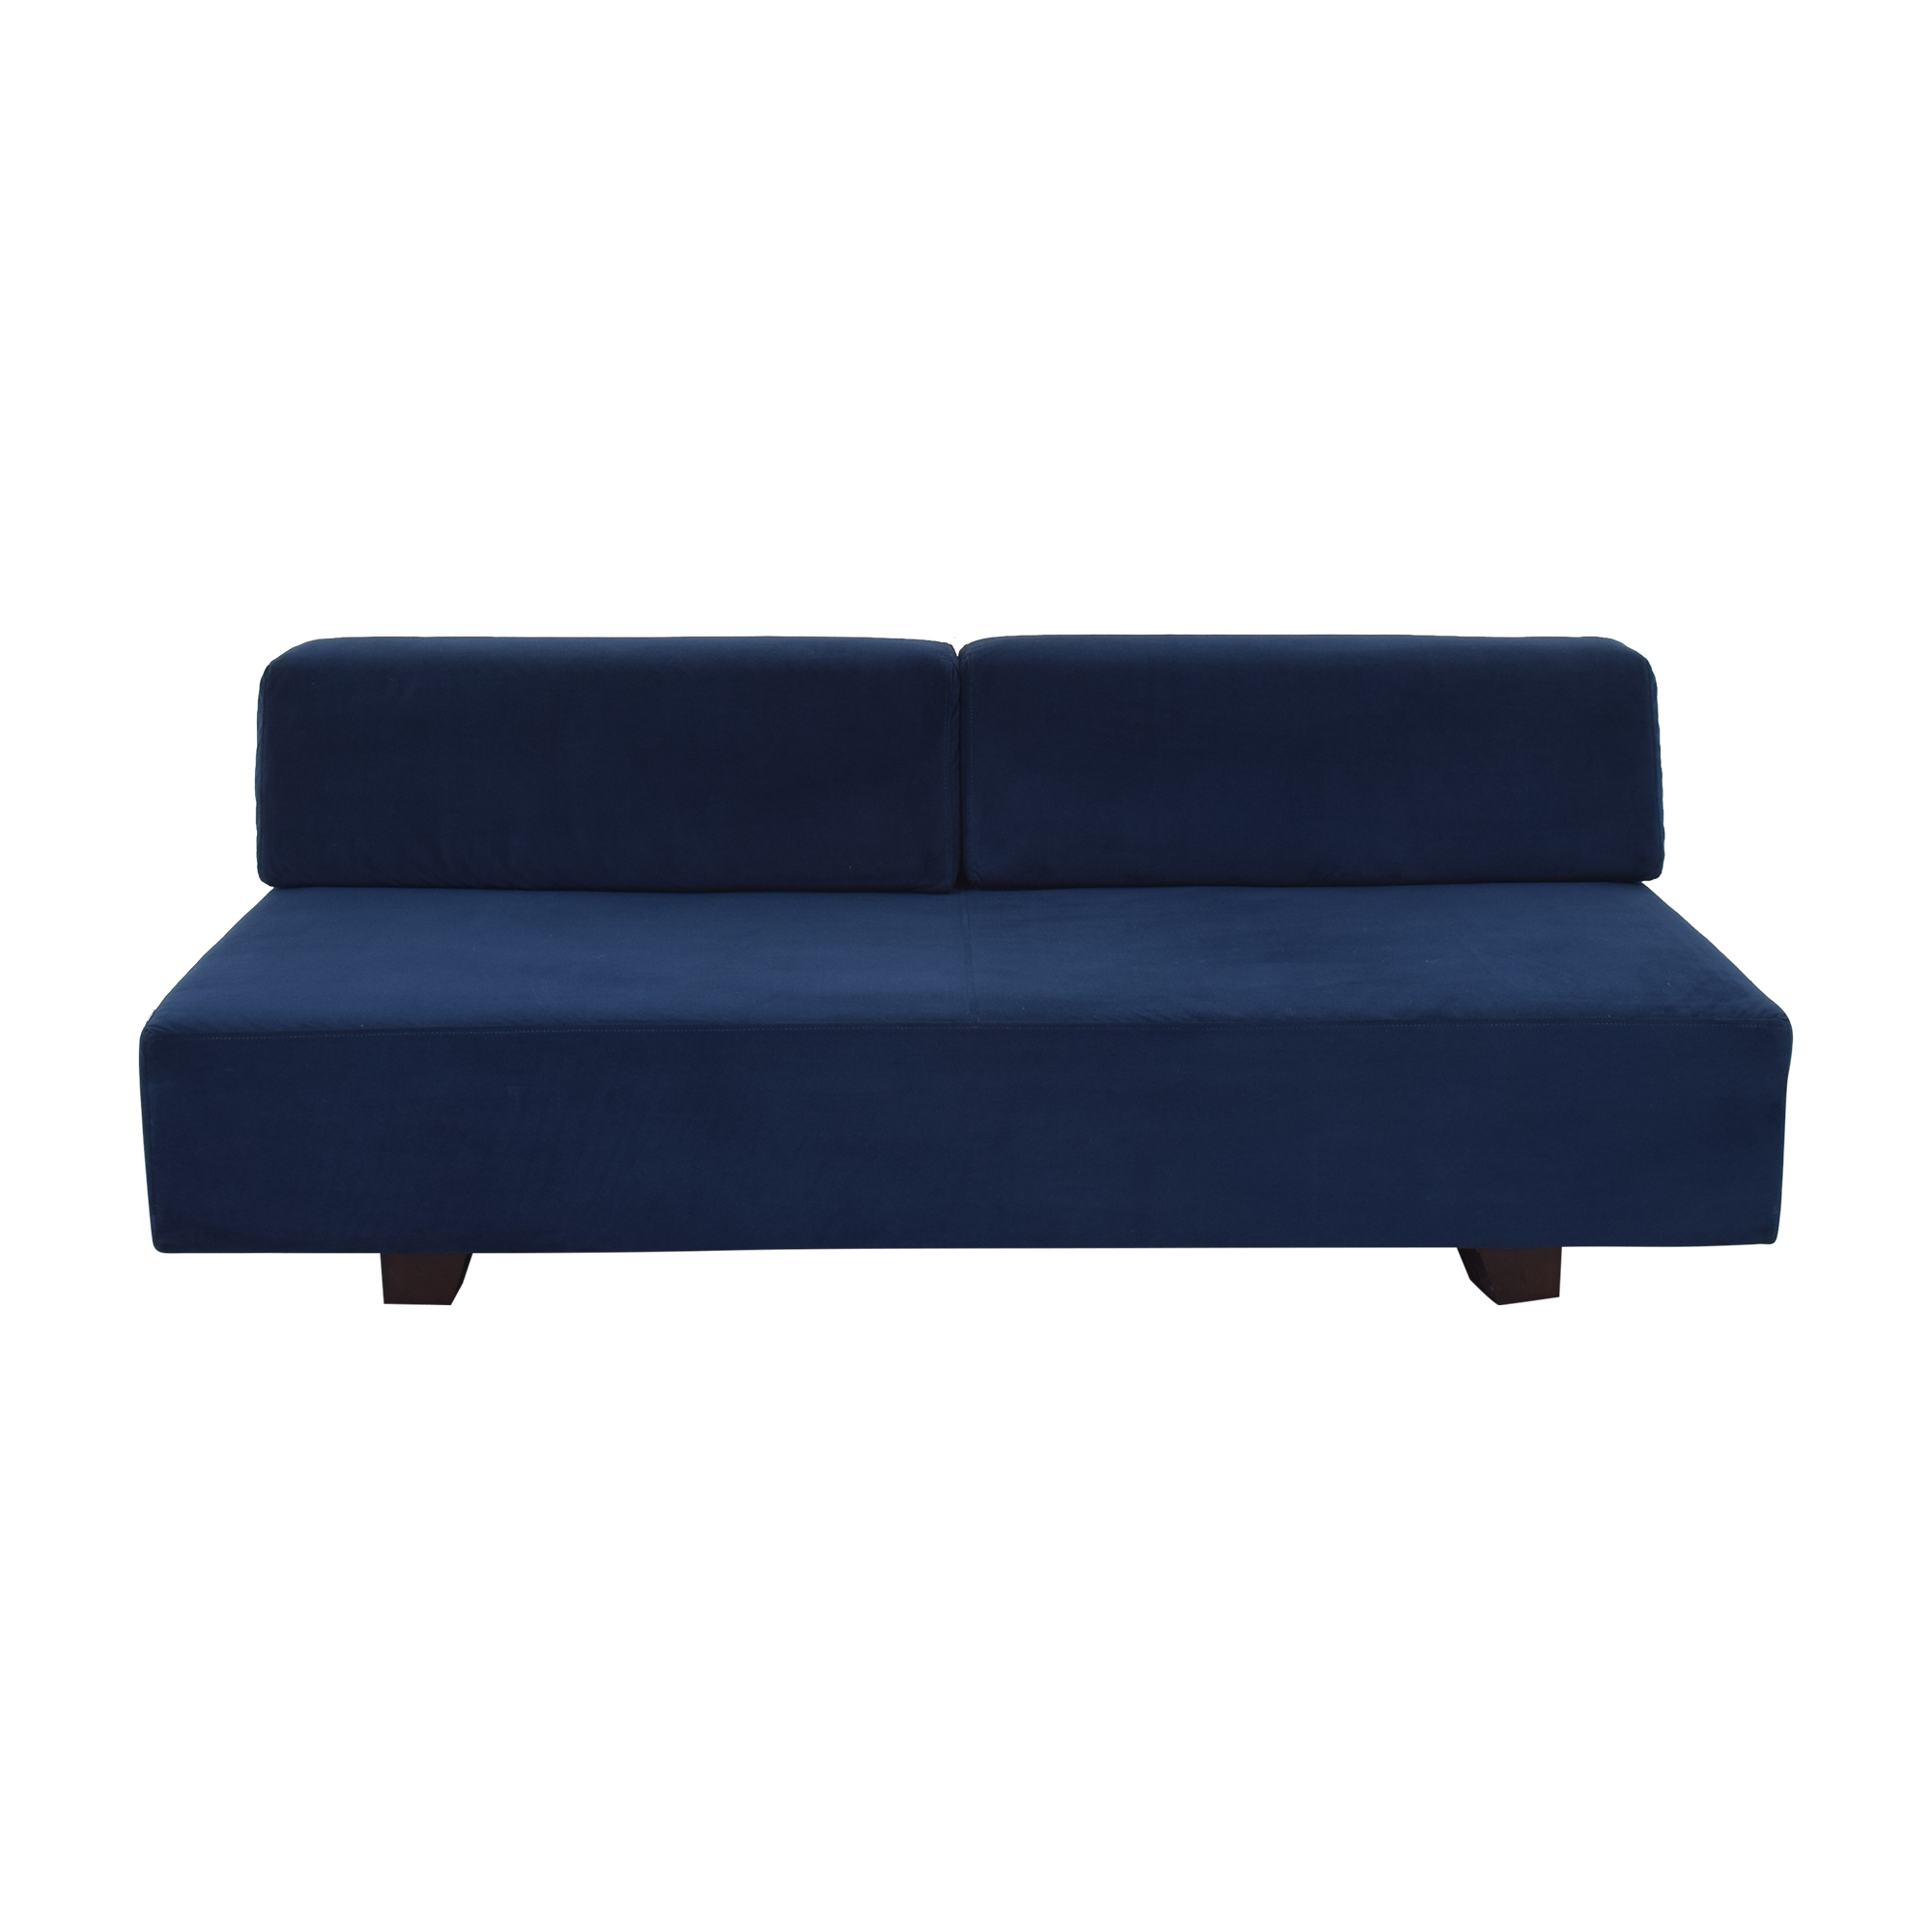 buy West Elm West Elm Tillary Sofa online